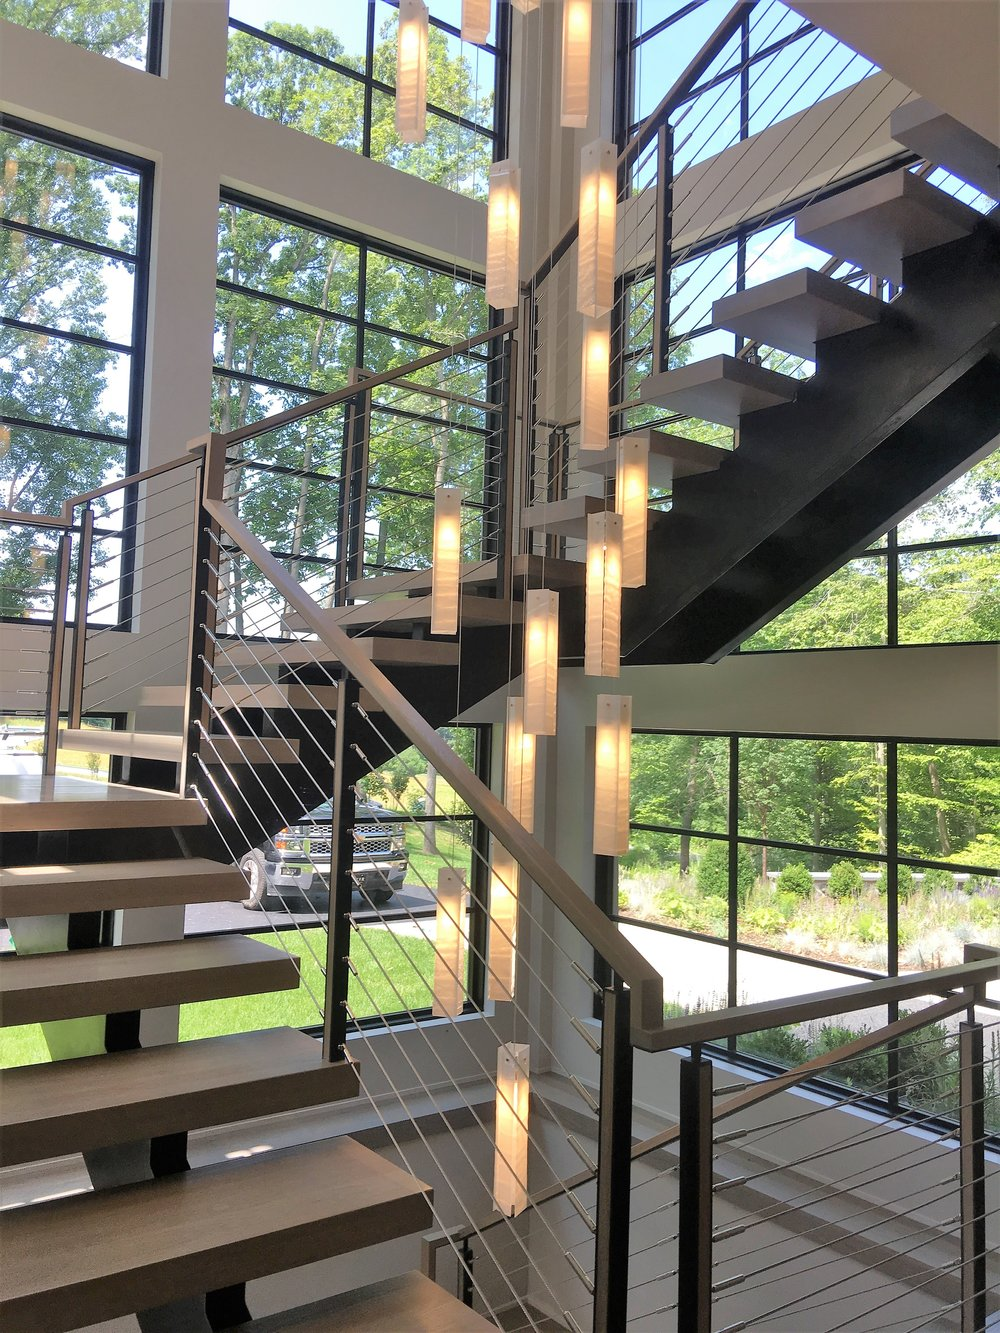 CUSTOM CABLE RAILING